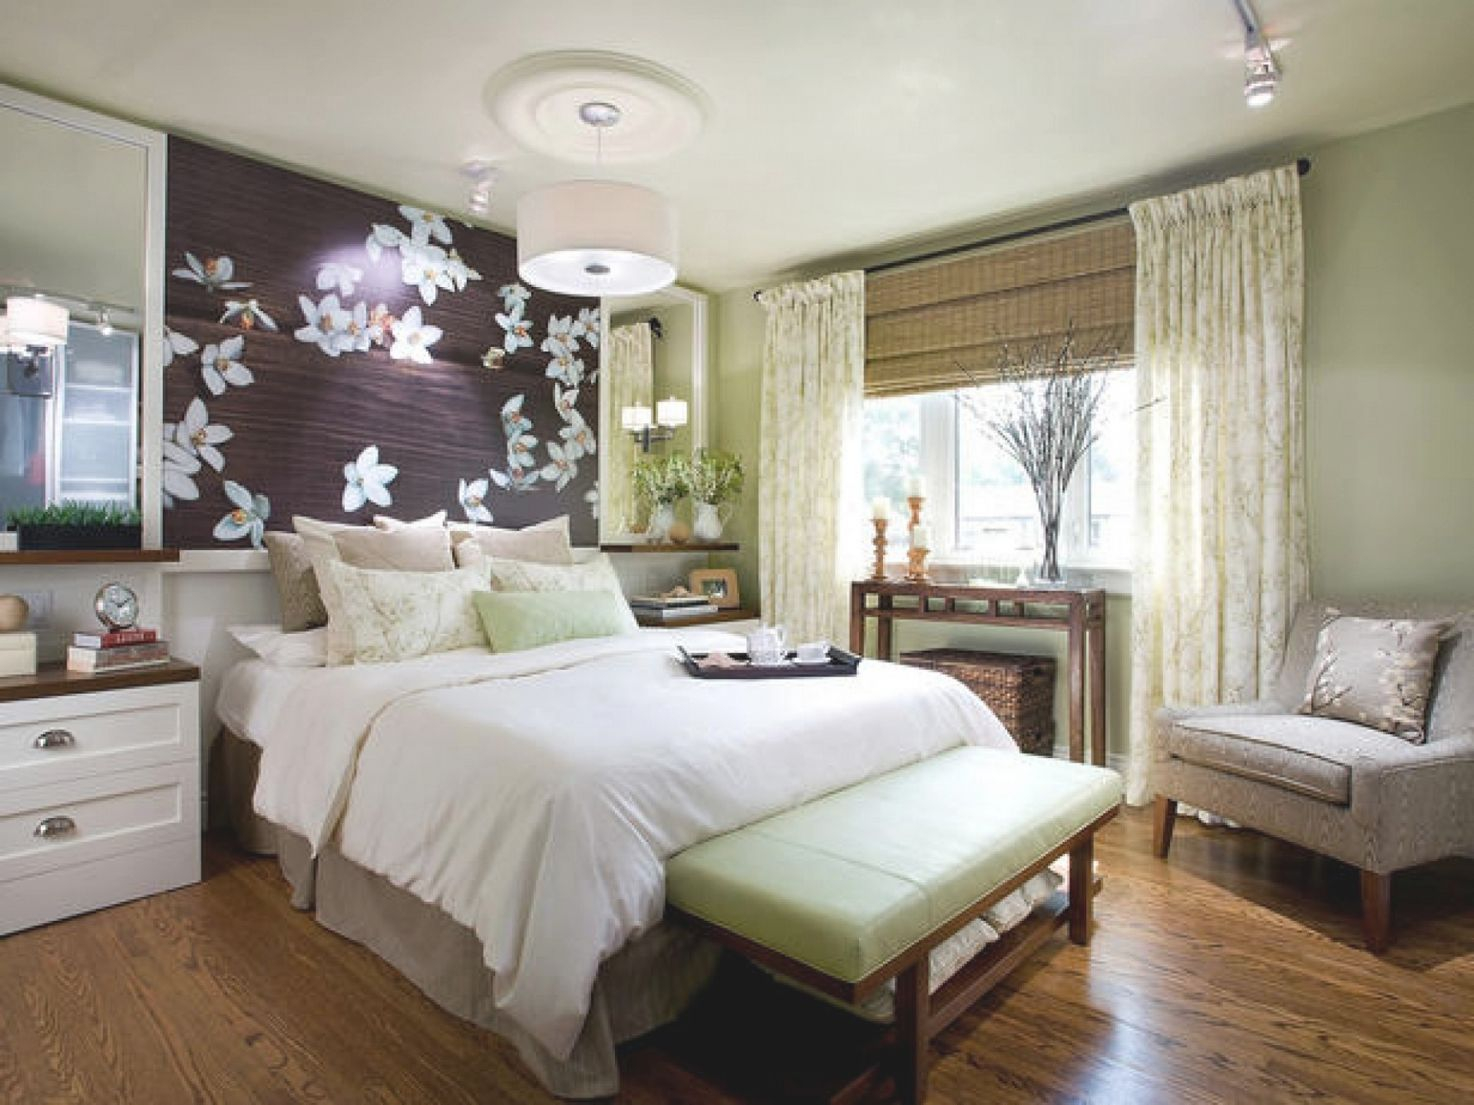 Beautiful Decorating Ideas For Master Bedrooms Bedroom inside Decorating Ideas Master Bedroom